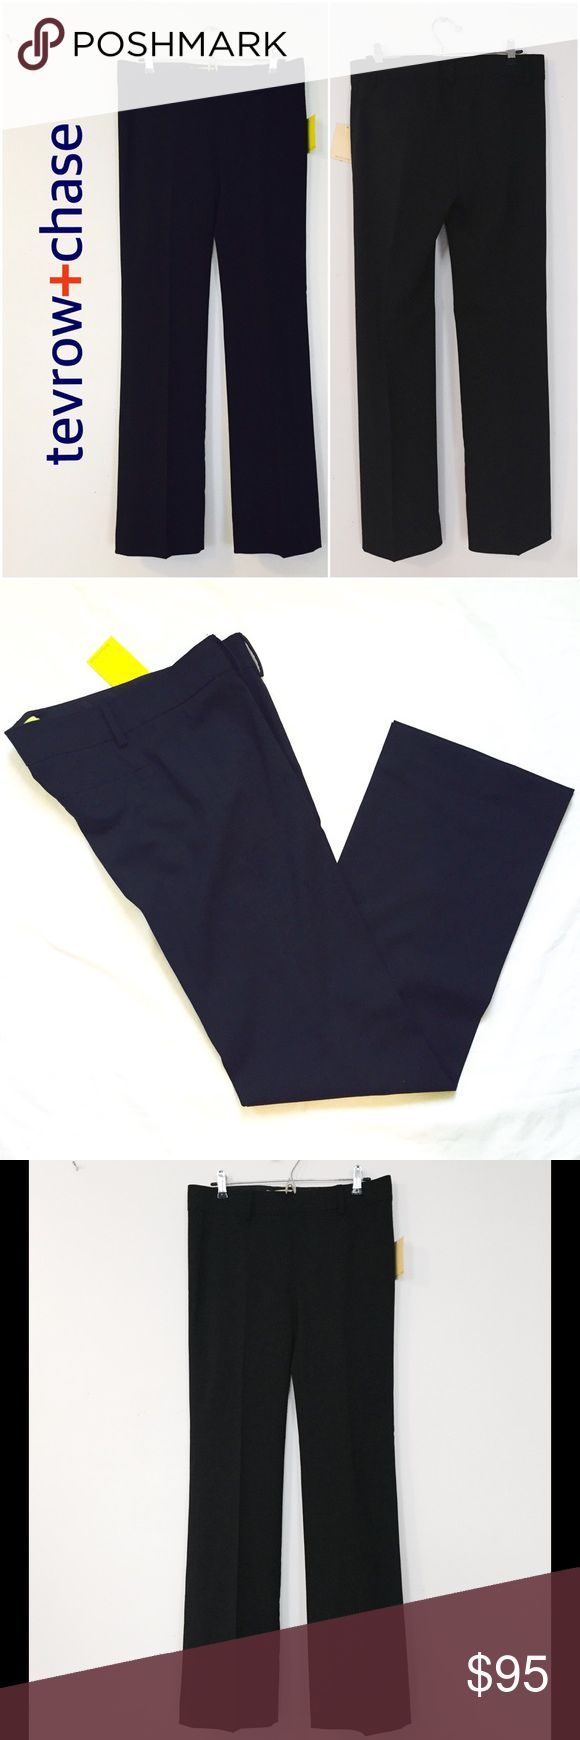 tevrow+chase TropWool Reese Pants tevrow+chase TropWool Reese trousers in black. Full, straight leg. Size 6. 98% Wool, 2% elastane. Made in Canada. Dry clean only. Wear it with a cashmere sweater and booties for a go-to Fall/Winter work outfit. tevrow+chase Pants Trousers